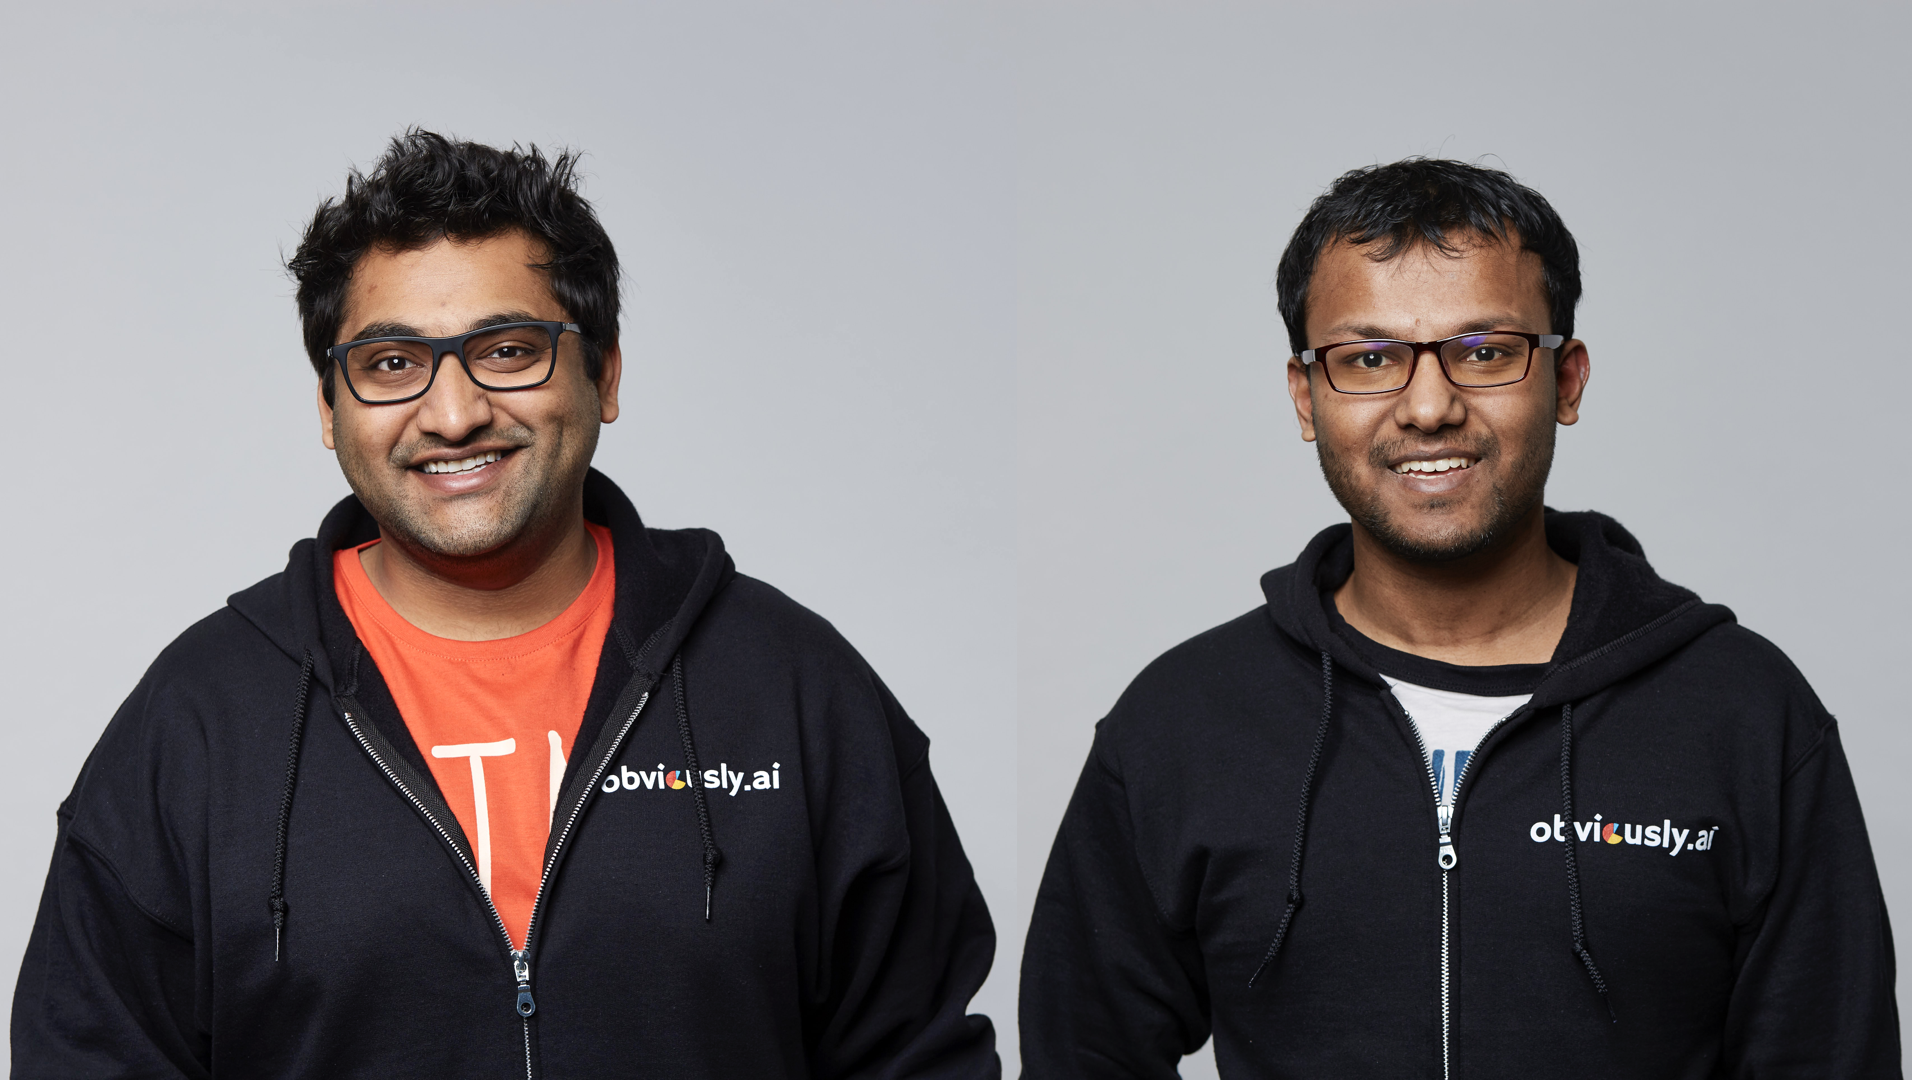 Obviously AI founders Nirman Dave and Tapojit Debnath